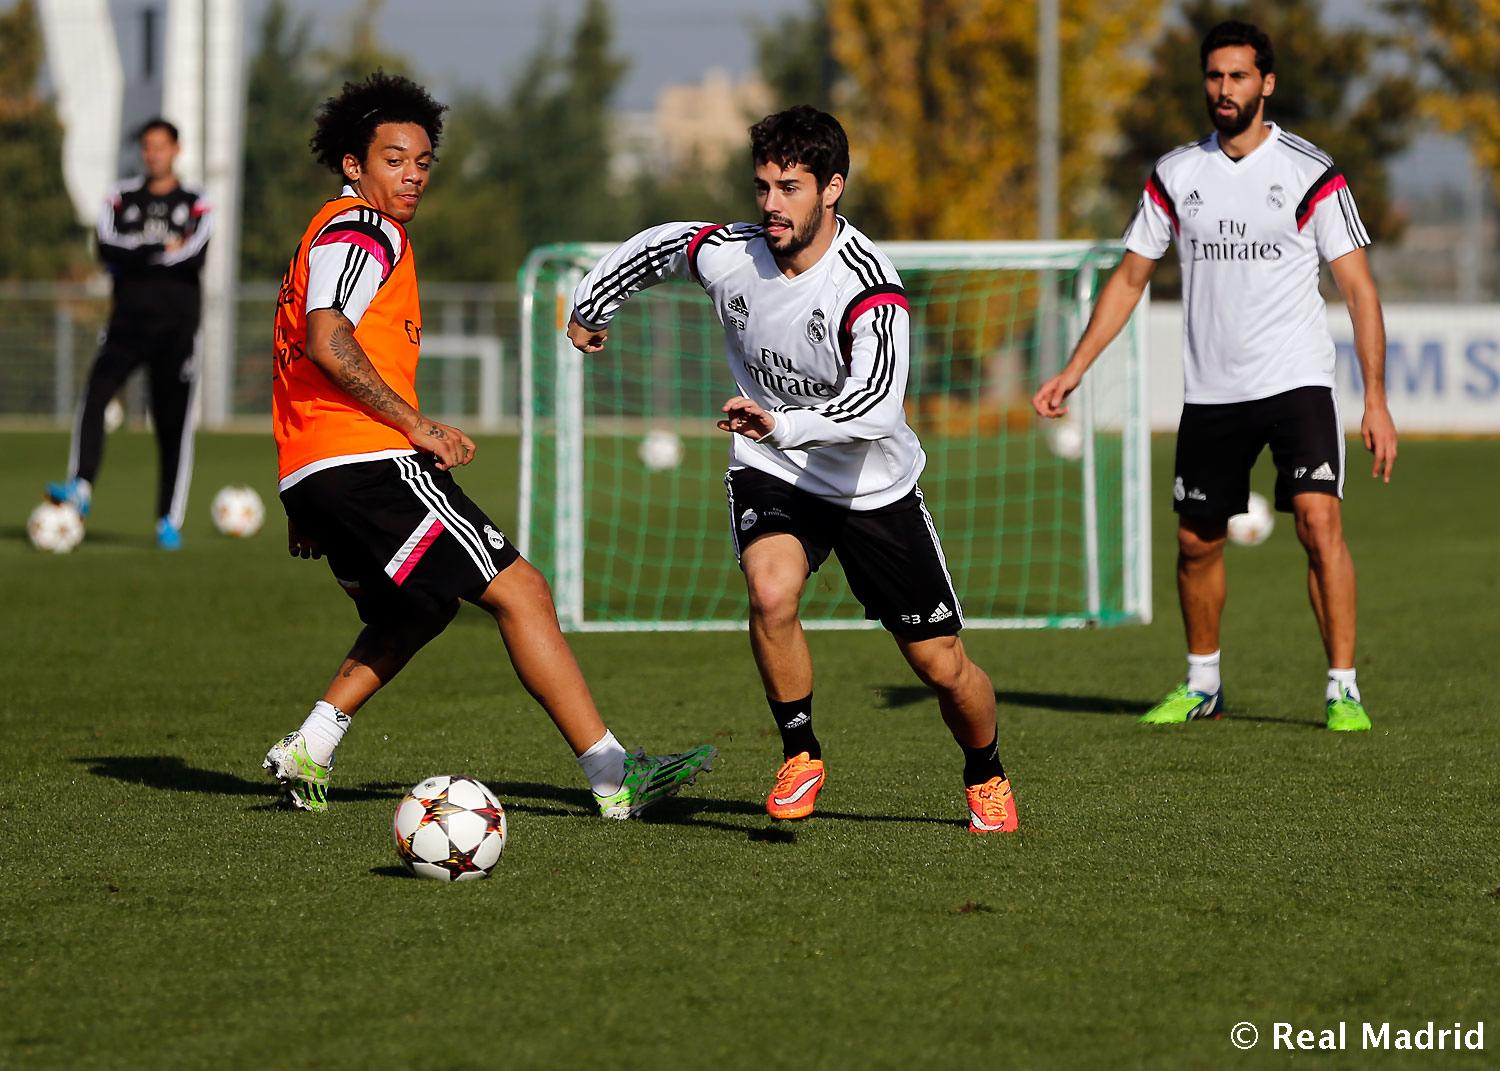 Real Madrid - Entrenamiento del Real Madrid - 24-11-2014